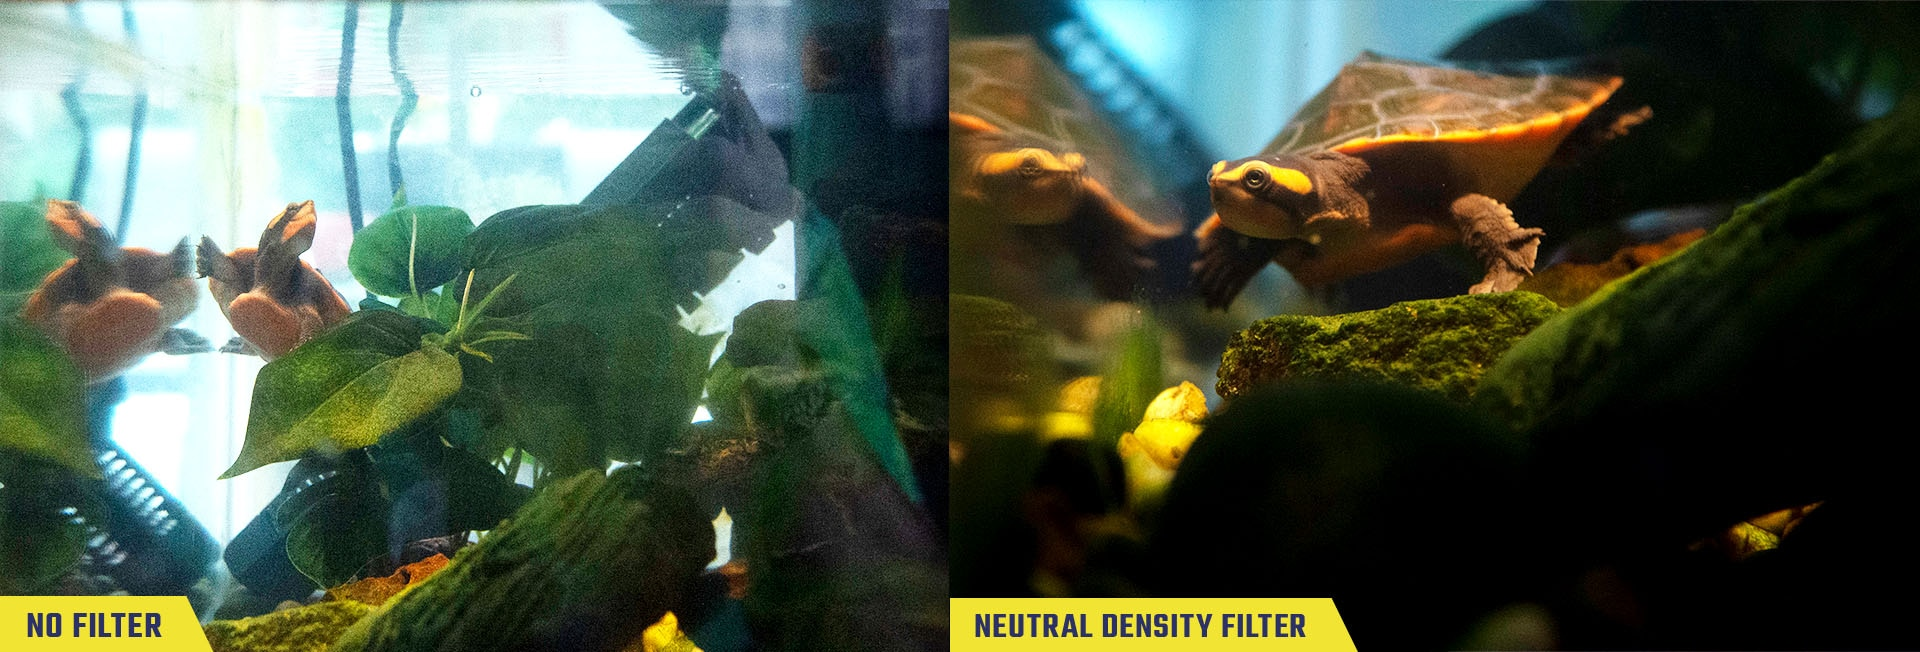 Sample photos of a turtle in an indoor tank aquarium taken with no filter and with the neutral density filter, labeled respectively.